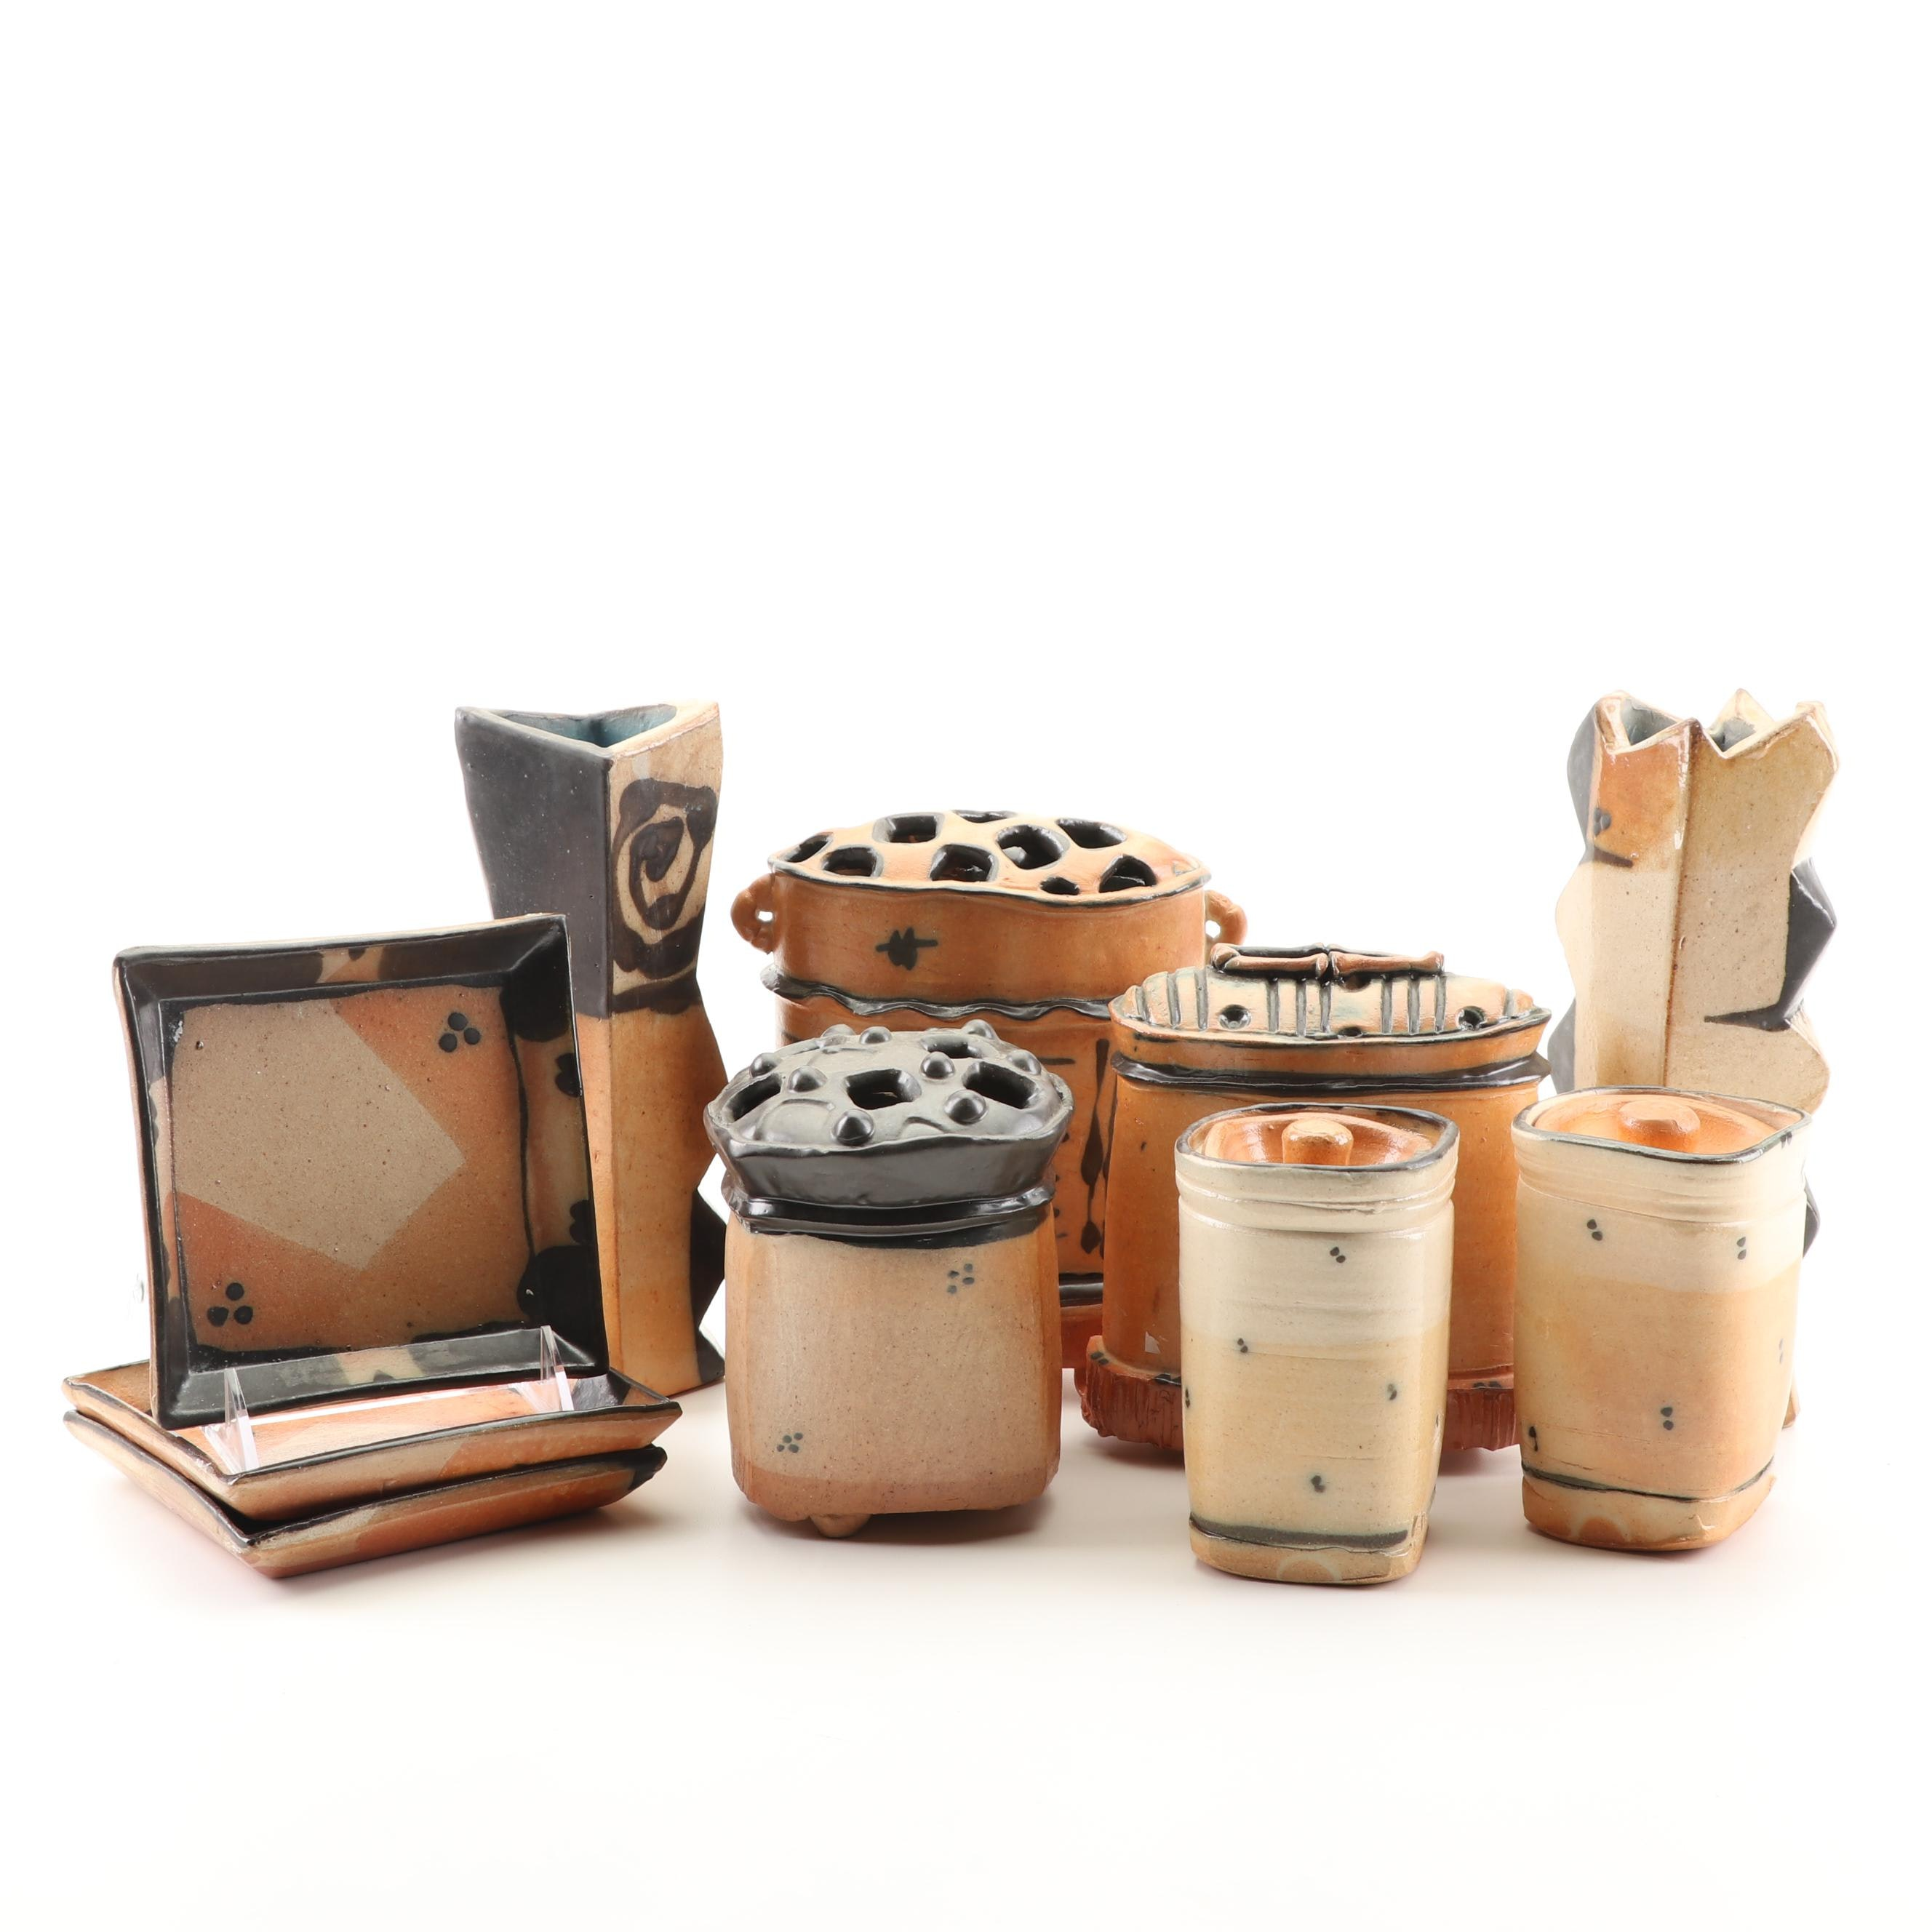 Terry Gess Wheel Thrown And Handbuilt Stoneware Tableware and Covered Canisters